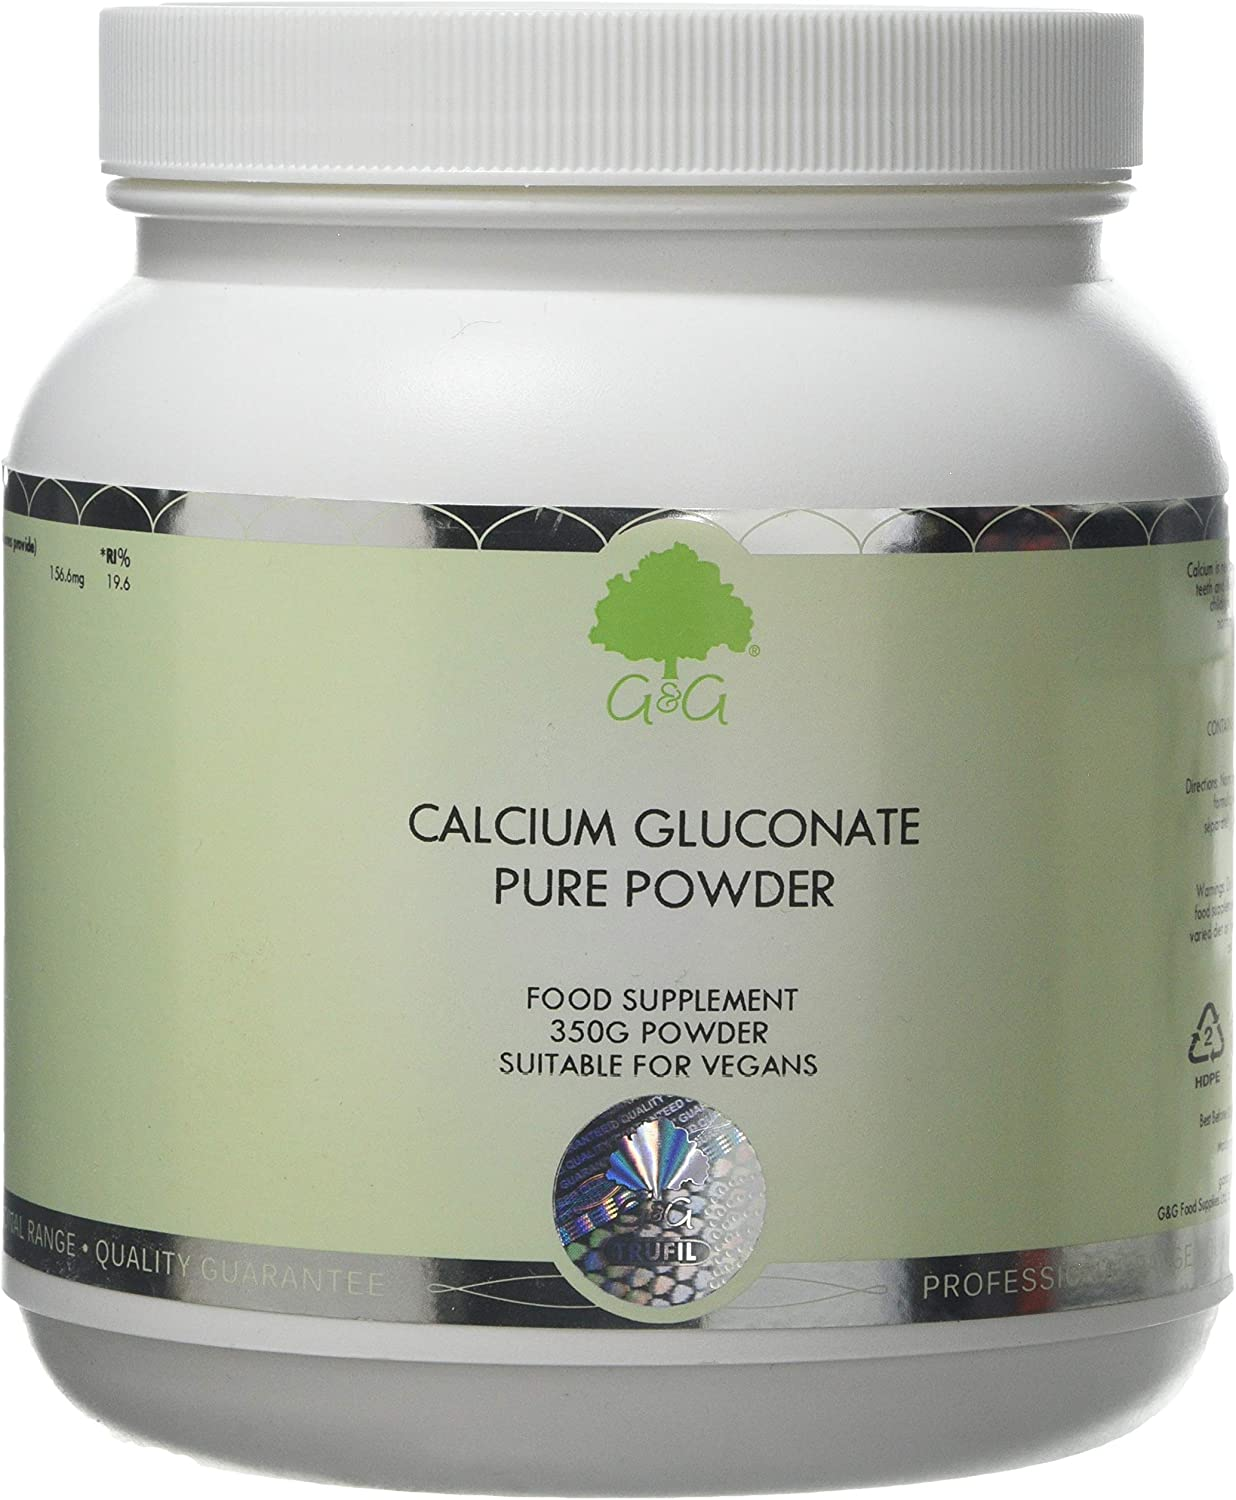 G&G Vitamins Calcium Gluconate Powder